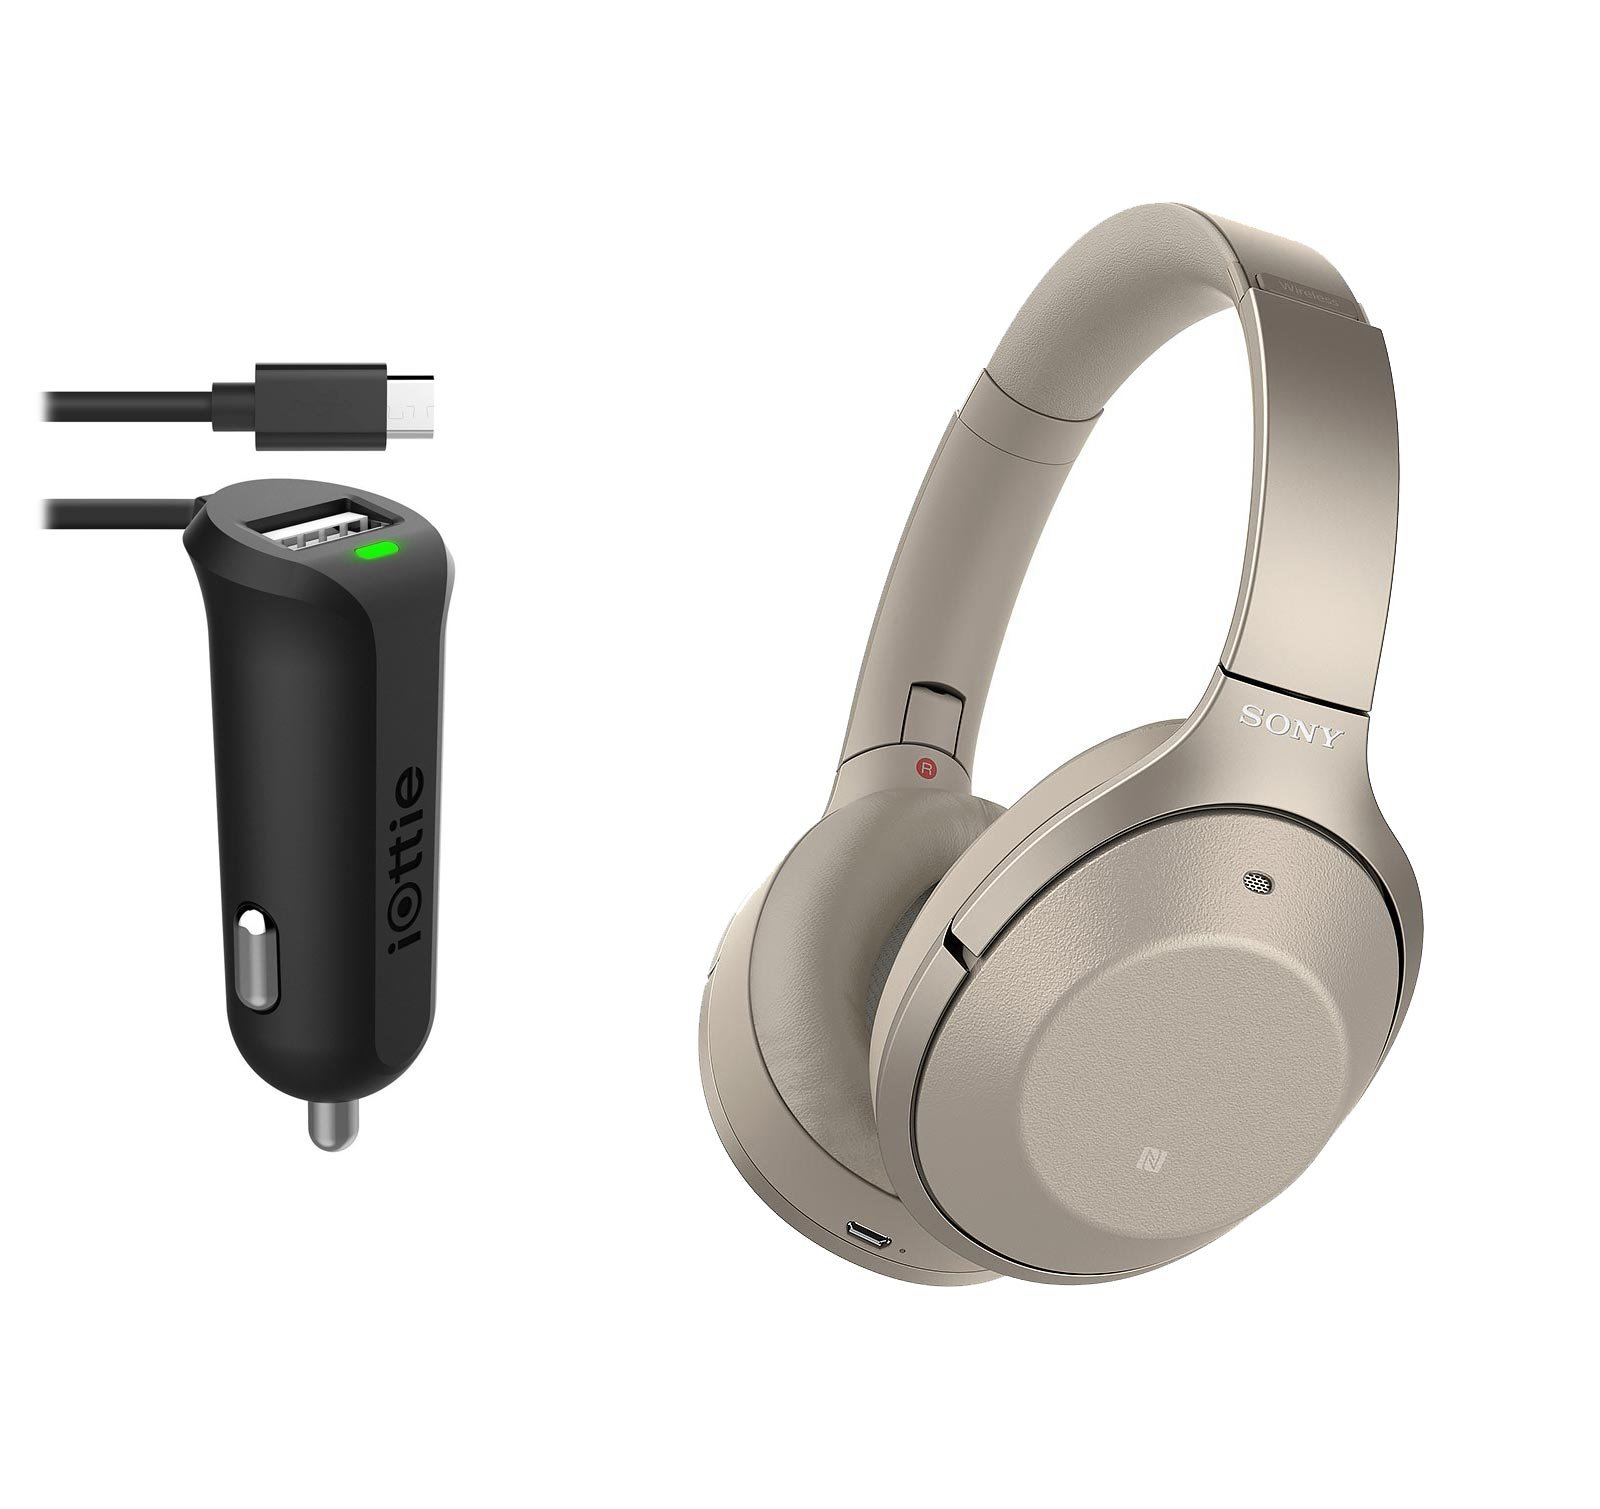 Sony WH1000XM2/N Wireless Bluetooth Noise Cancelling Headphones With Micro USB Car Charger - Gold